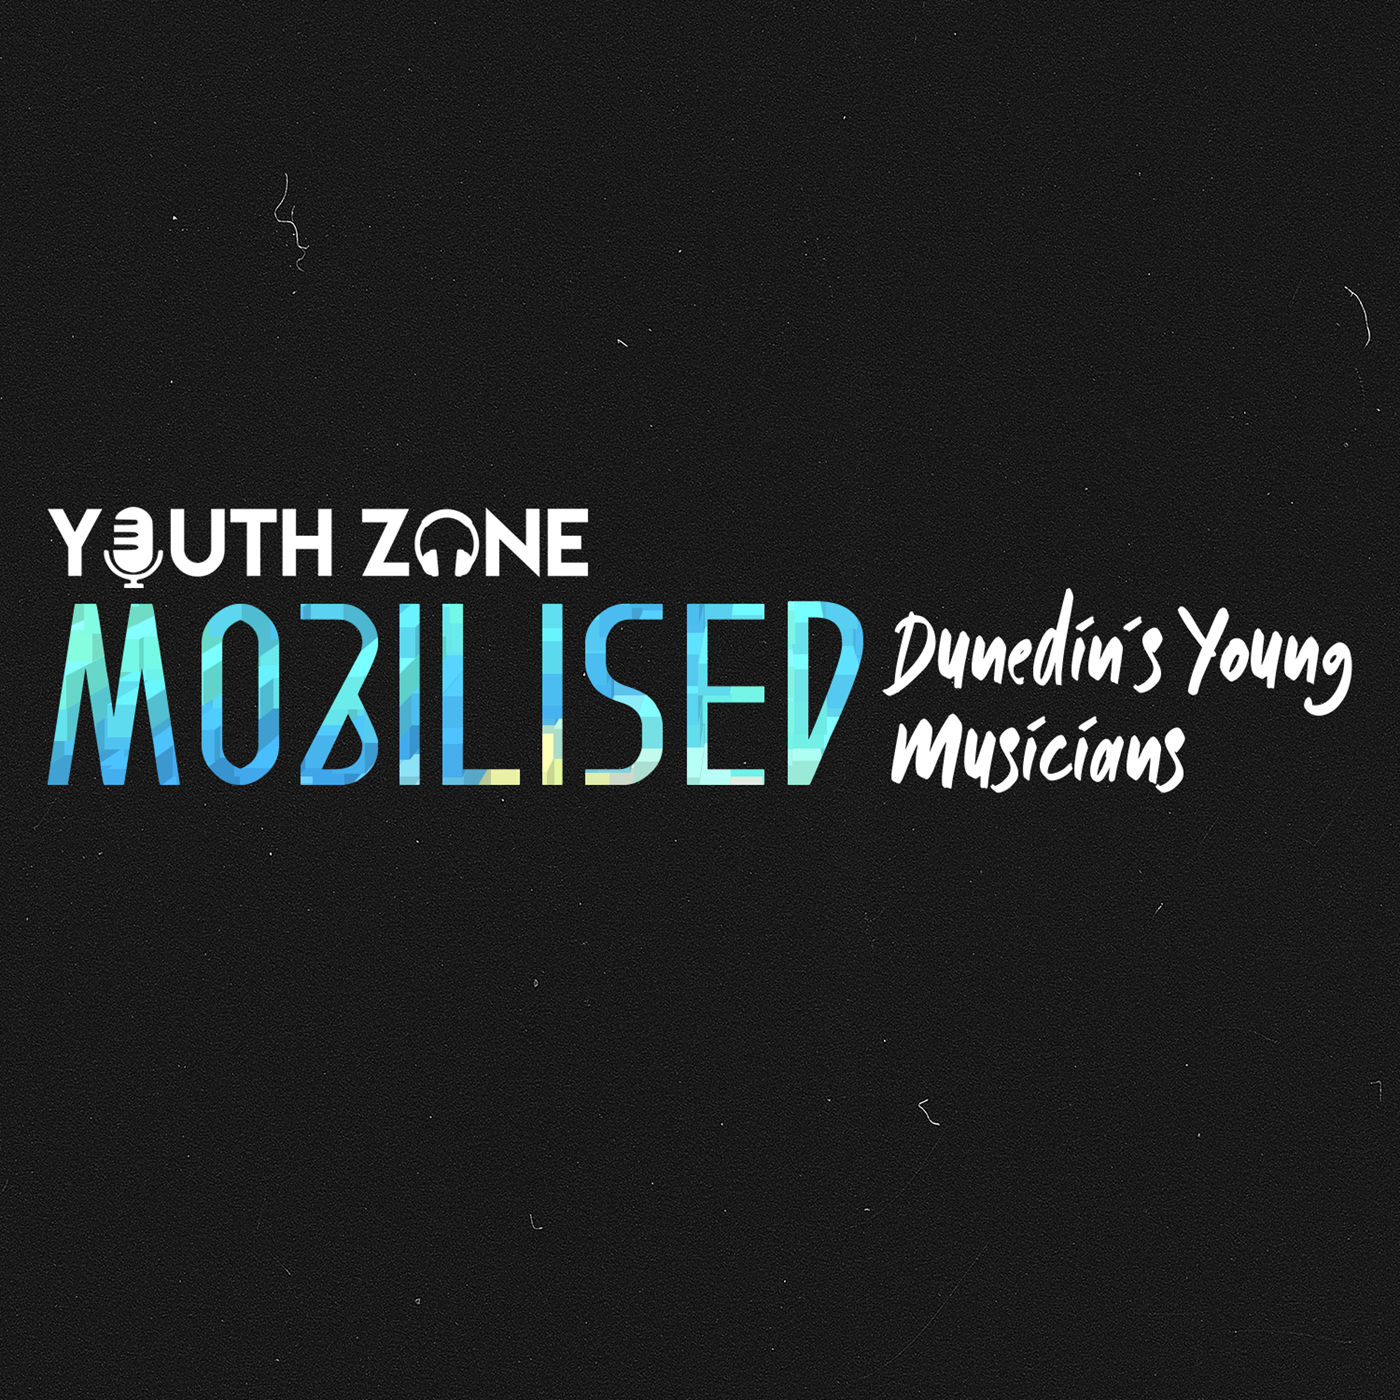 Youth Zone Mobilised - Tabitha Littlejohn - 20-05-2019